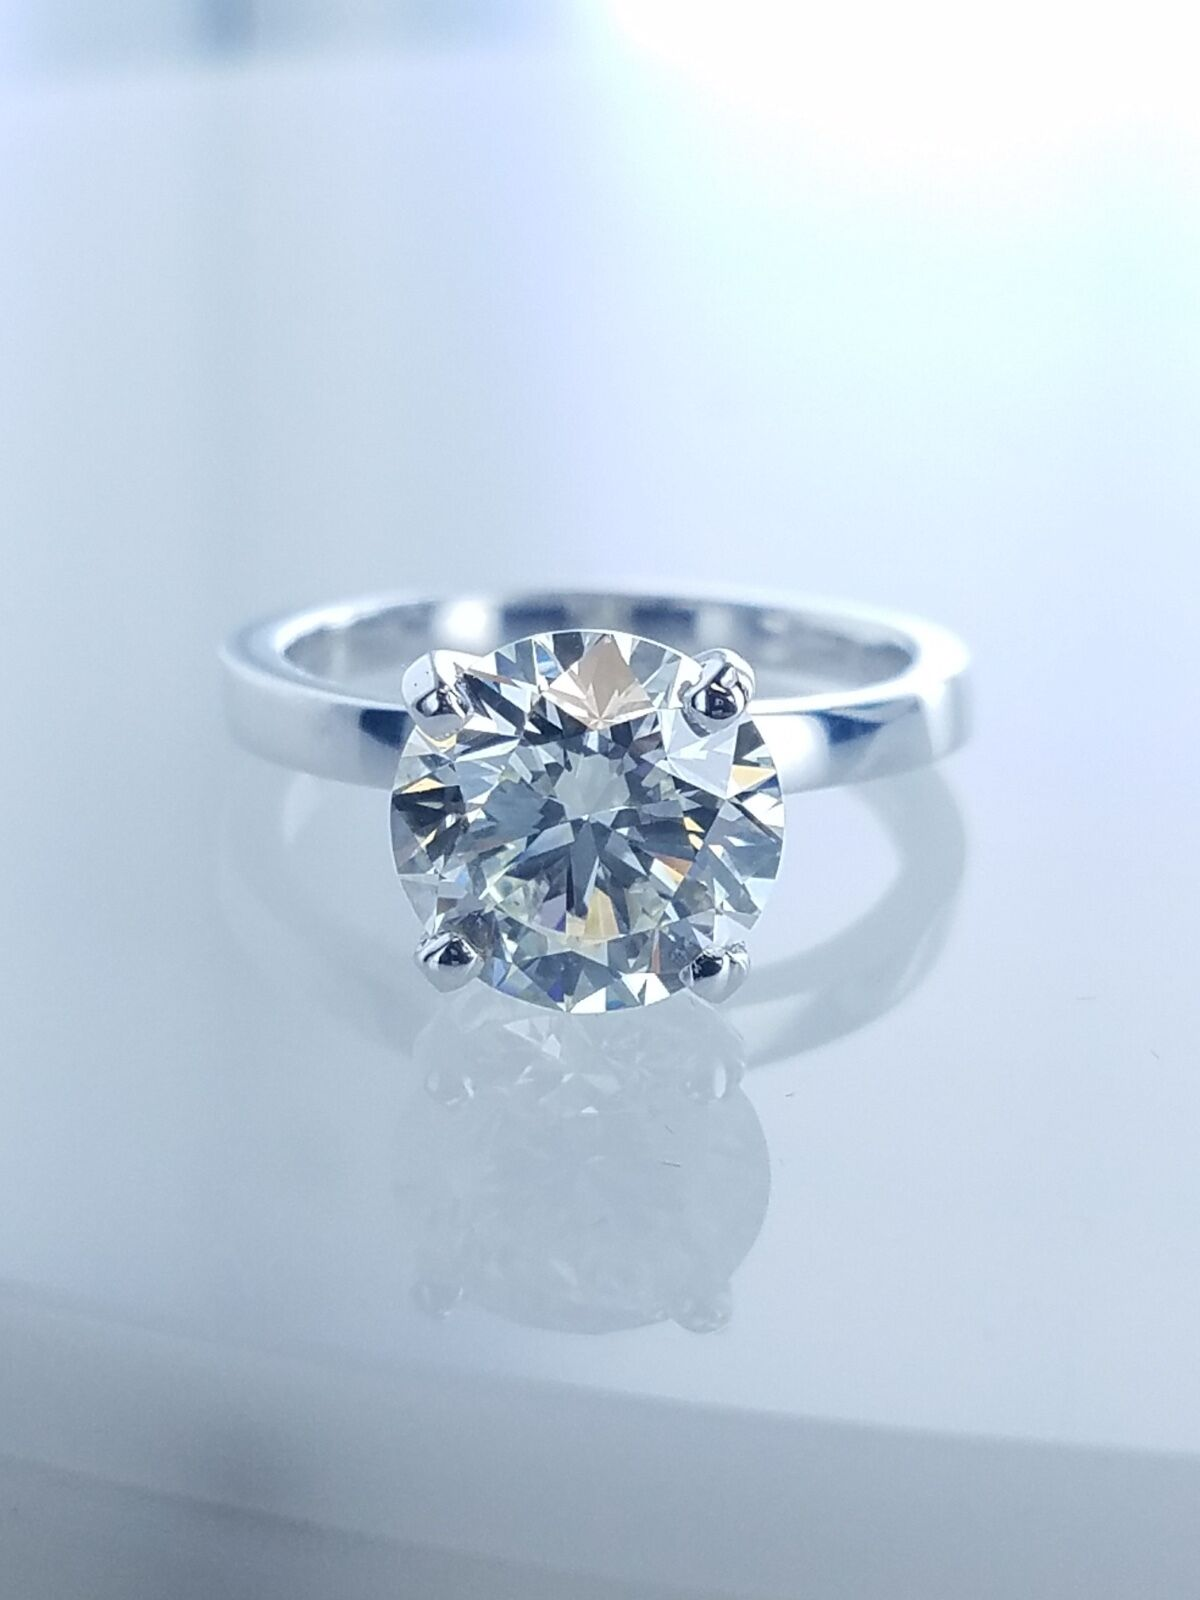 2.72 CT Solitaire Diamond Engagement Ring GIA Certified M-SI1 Ladies Round Cut  1